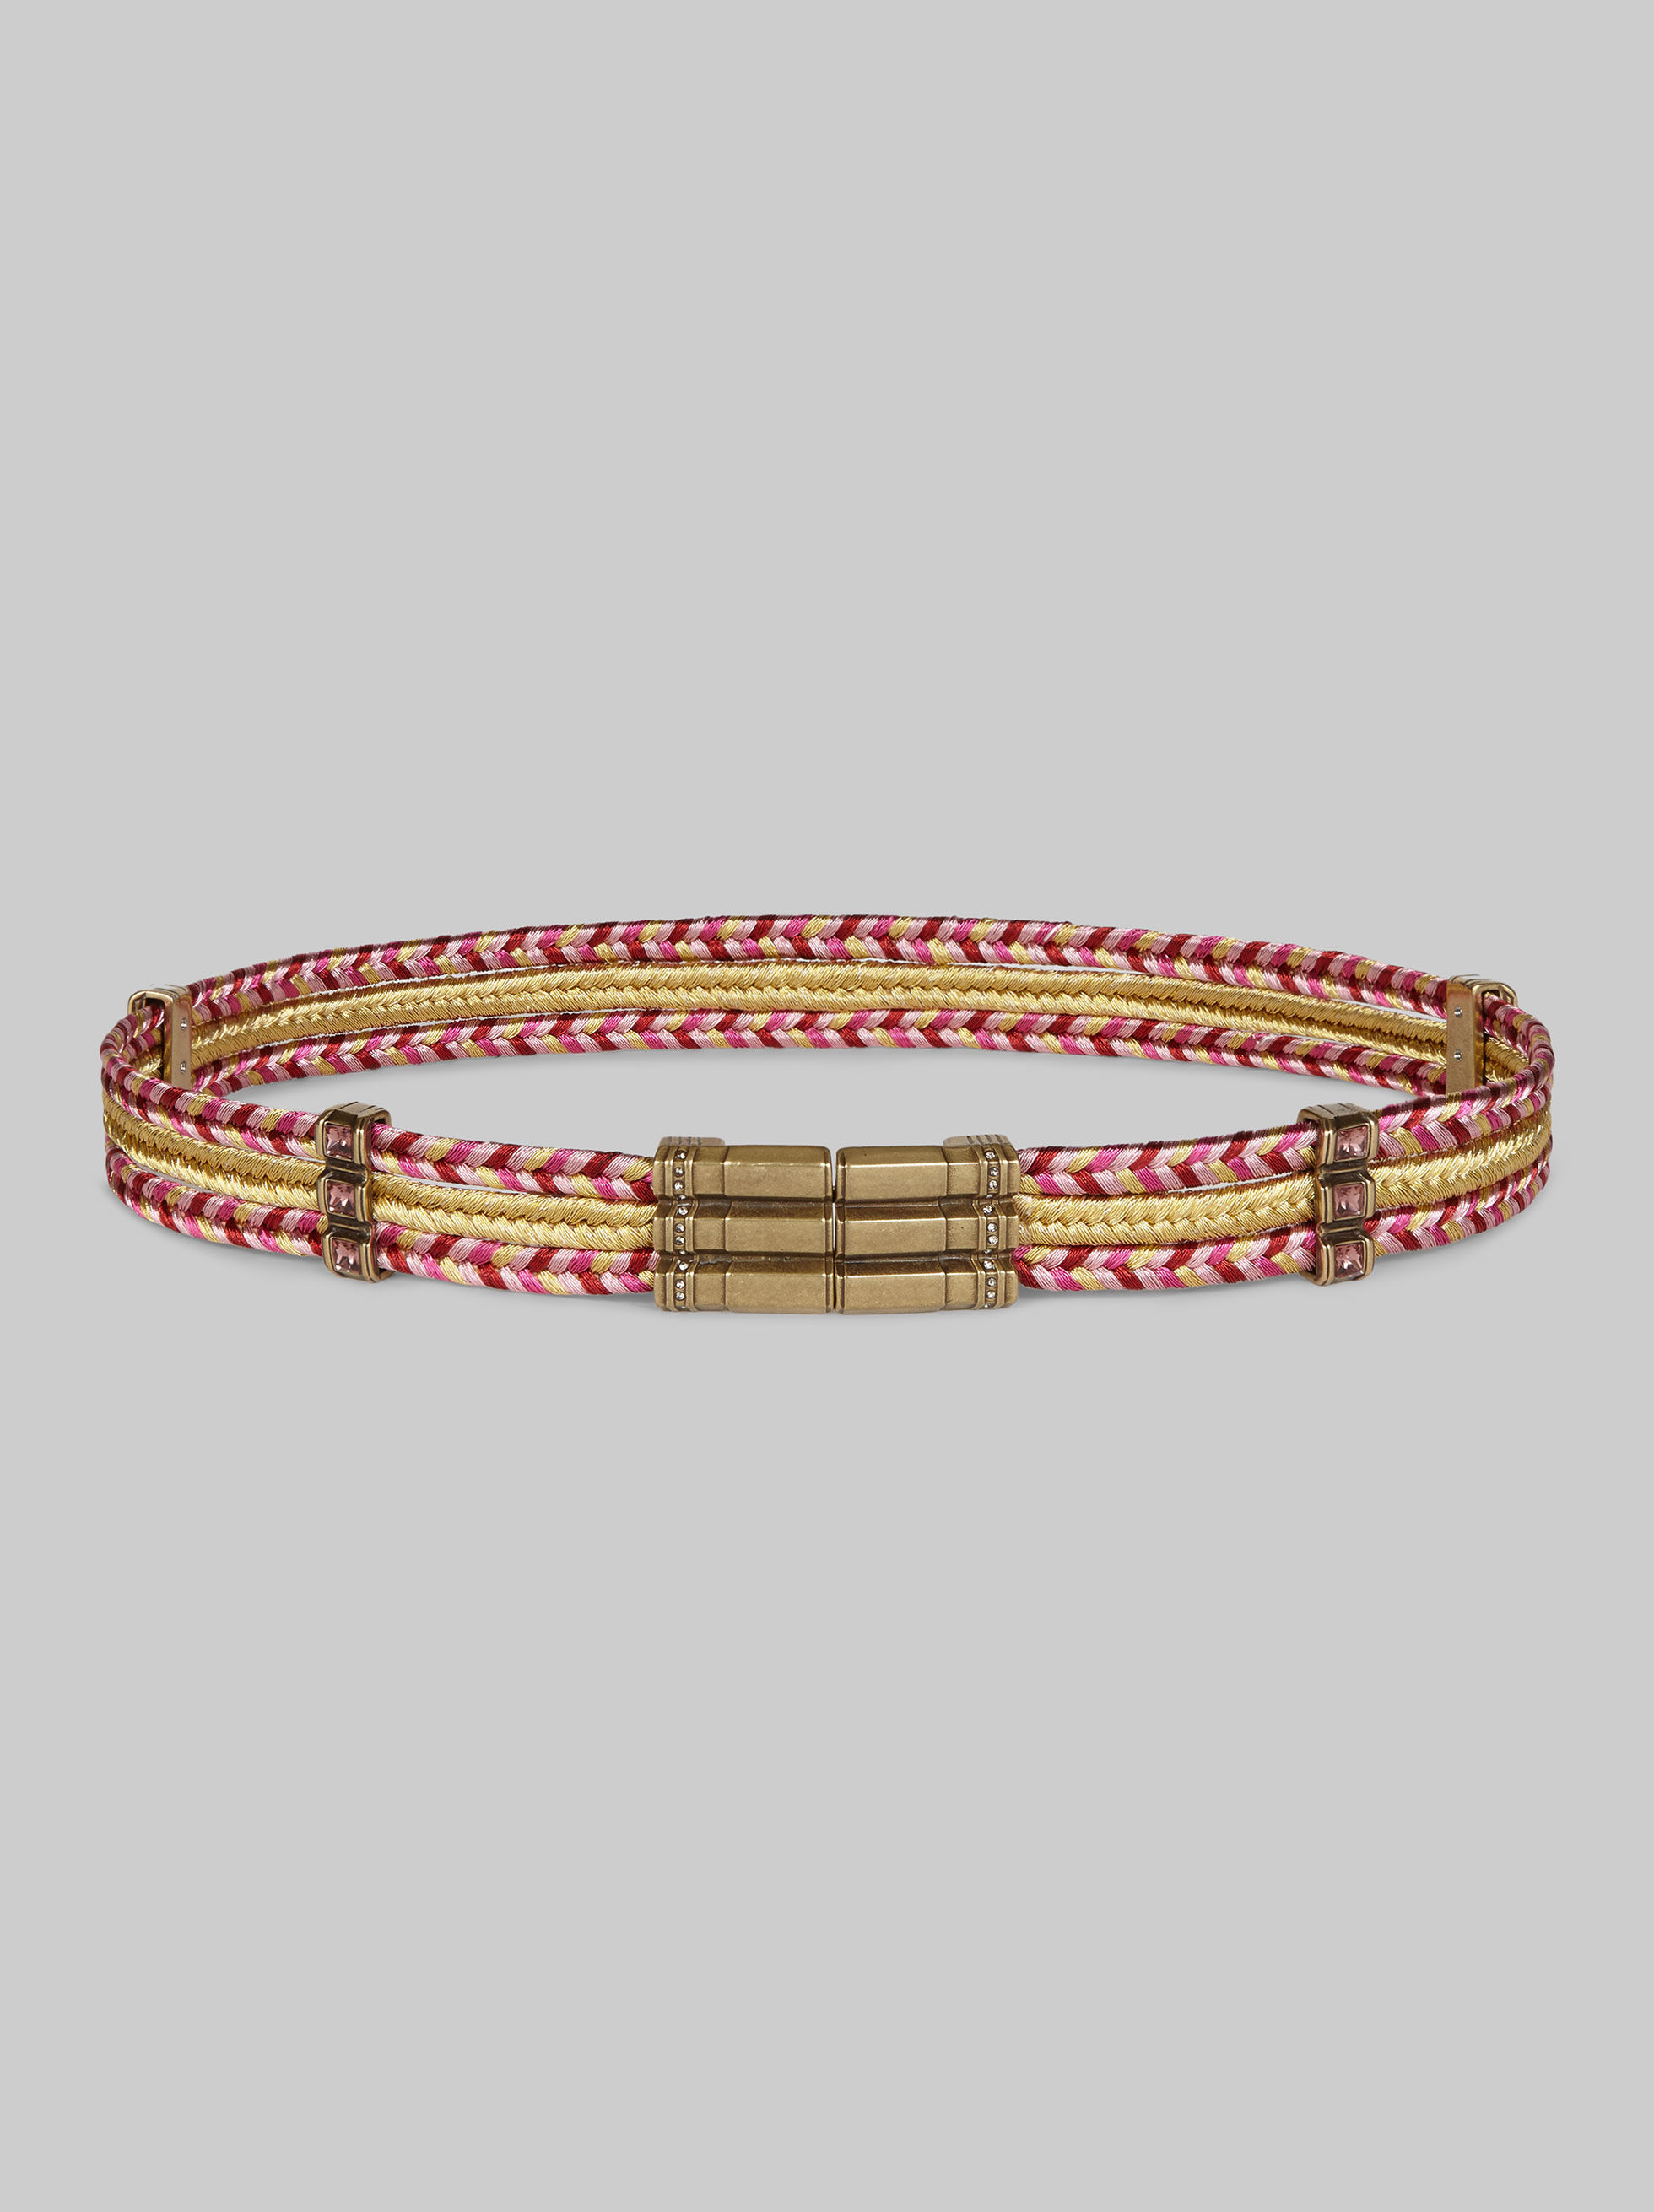 TEXTILE BELT WITH JEWELLED DETAILING